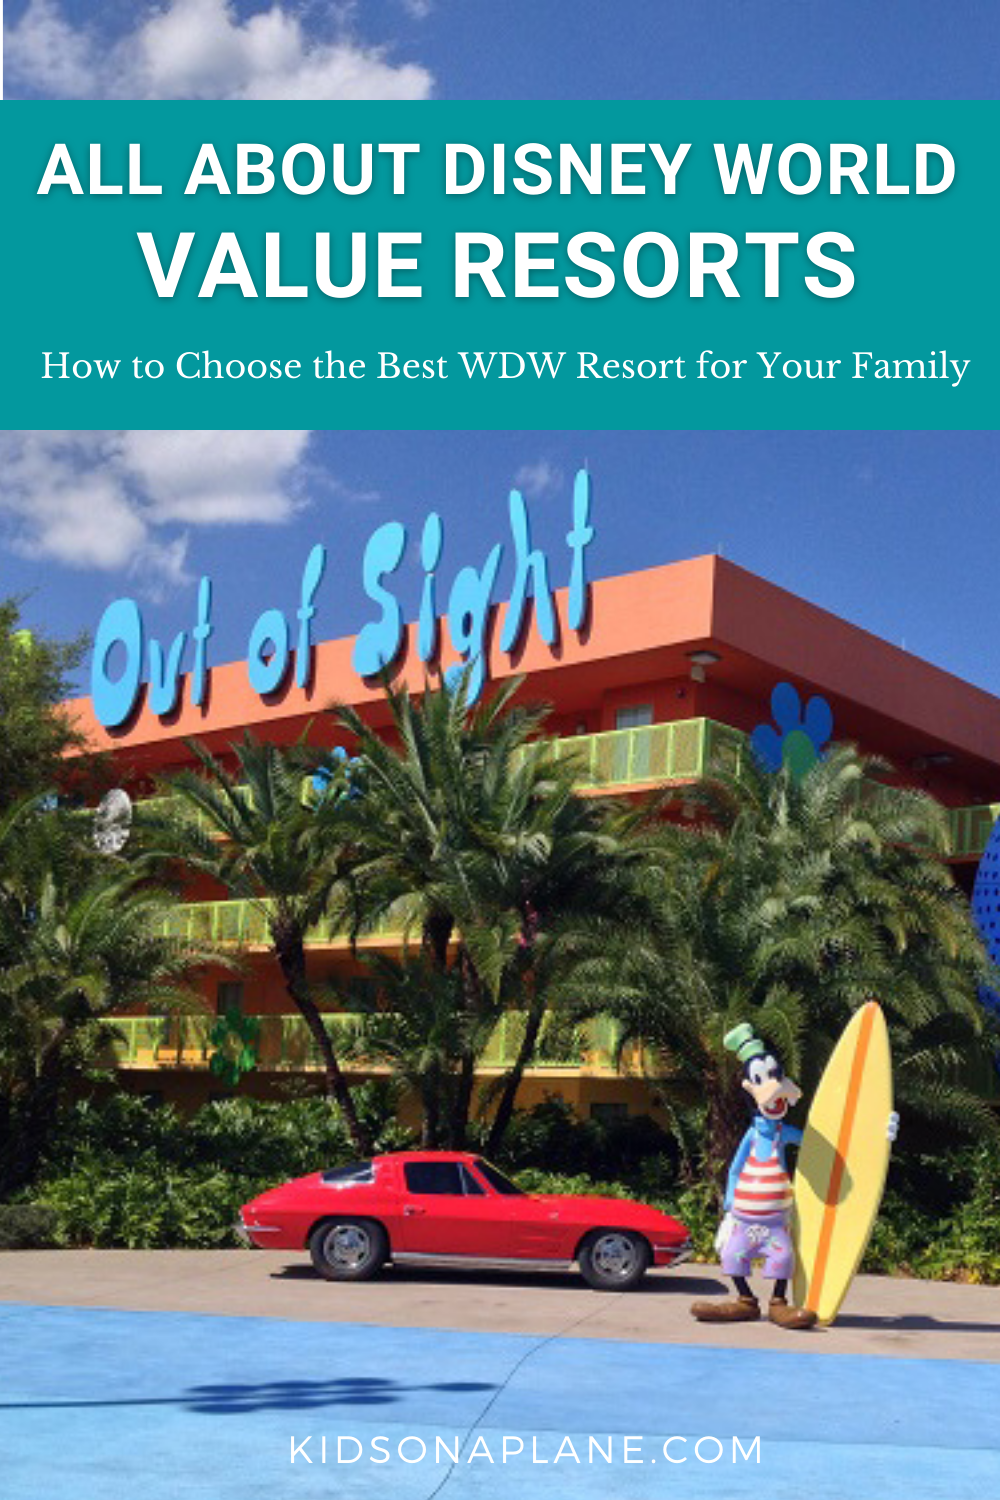 Disney World Value Resorts - Everything you need to know - cost pros and cons and how to choose the right one